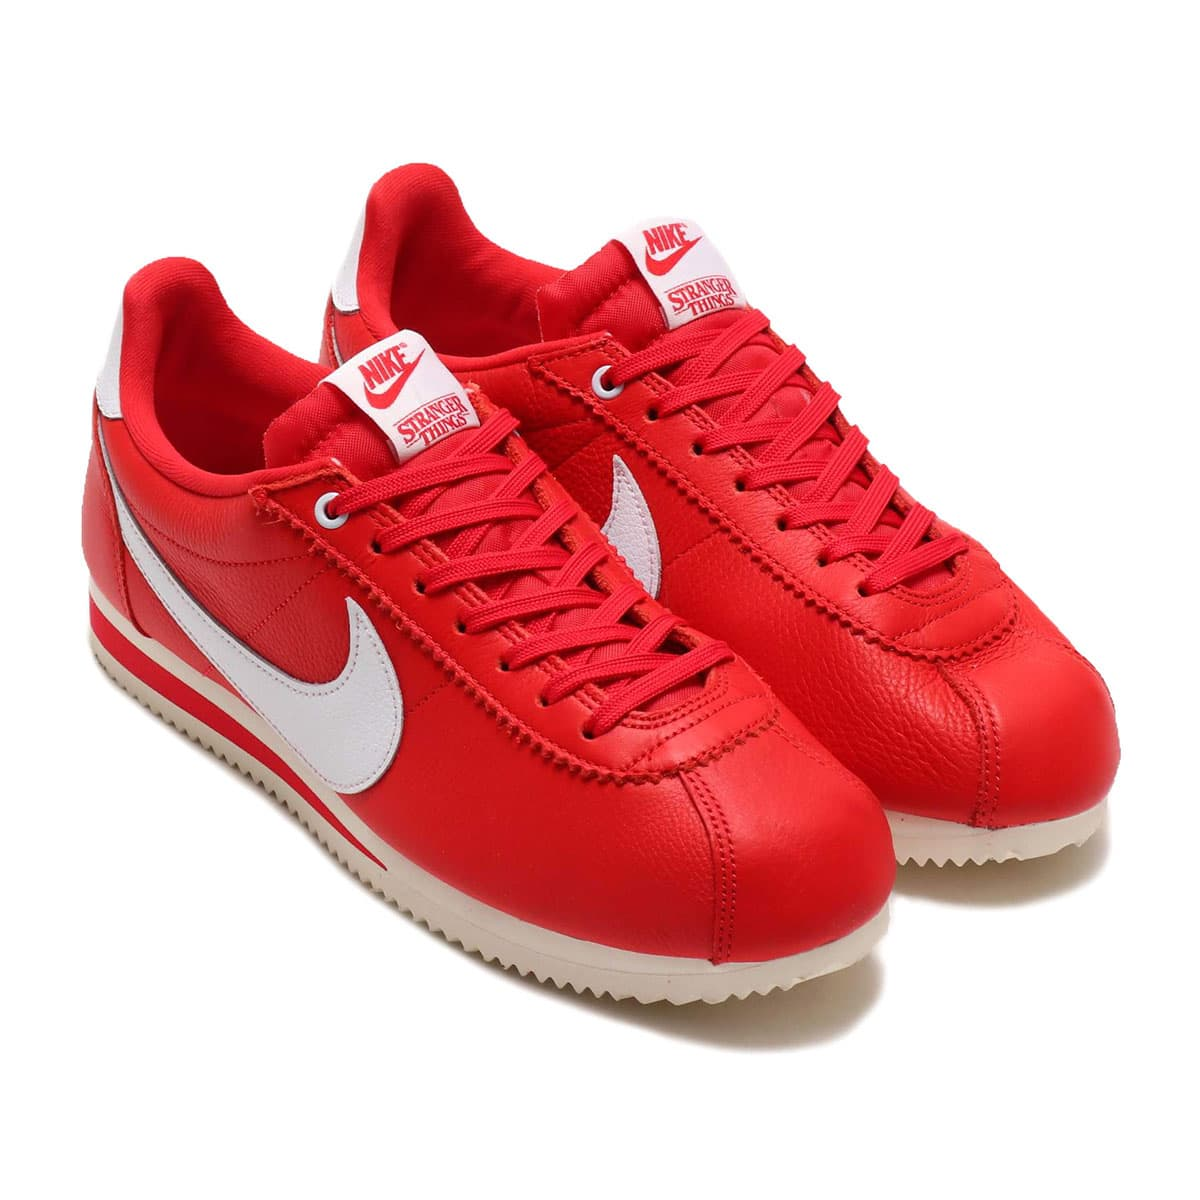 NIKE CLASSIC CORTEZ QS ST UNIVERSITY RED/WHITE 19FA-S_photo_large